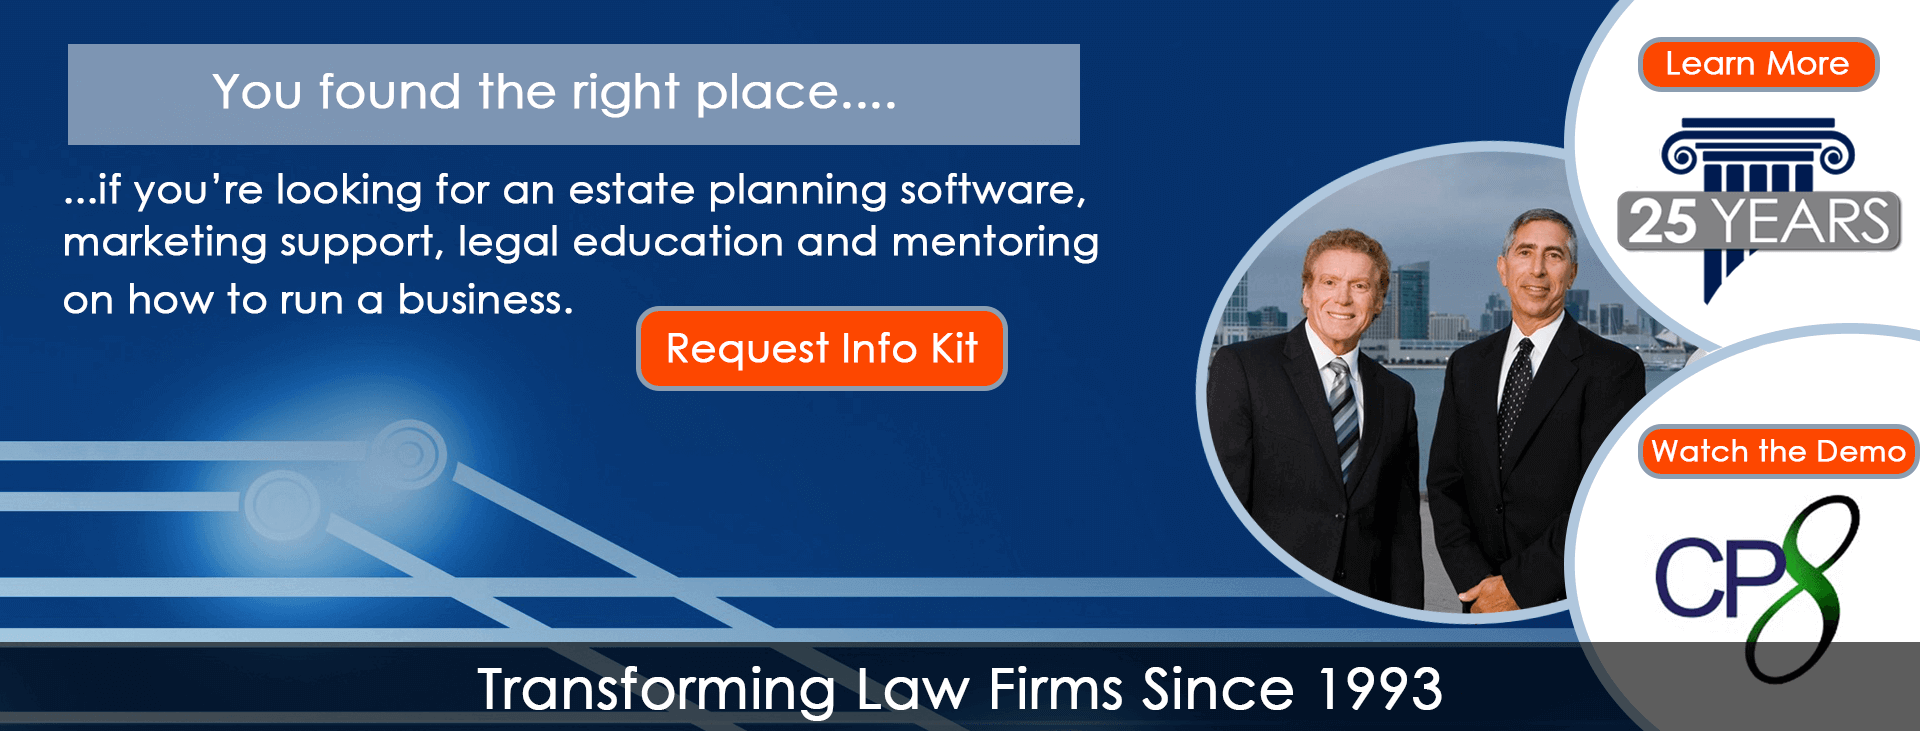 You fine the right place...  if you are looking for an estate planing software, marketing support, legal education and mentoring on how to run business.